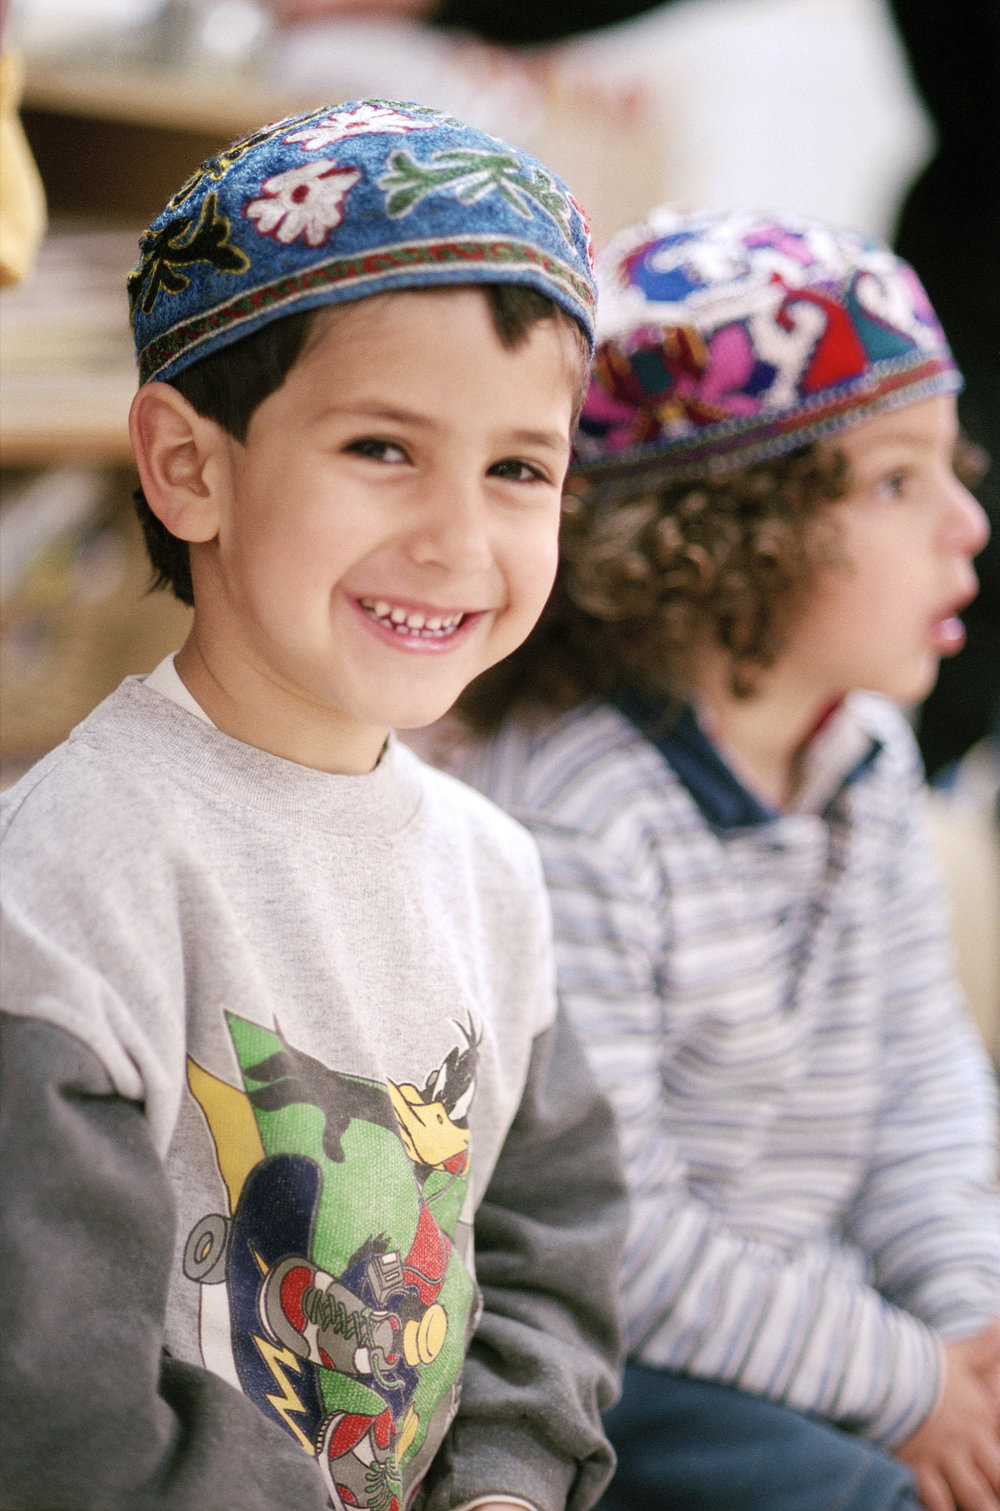 Smiling Boy in a Kippah.jpg